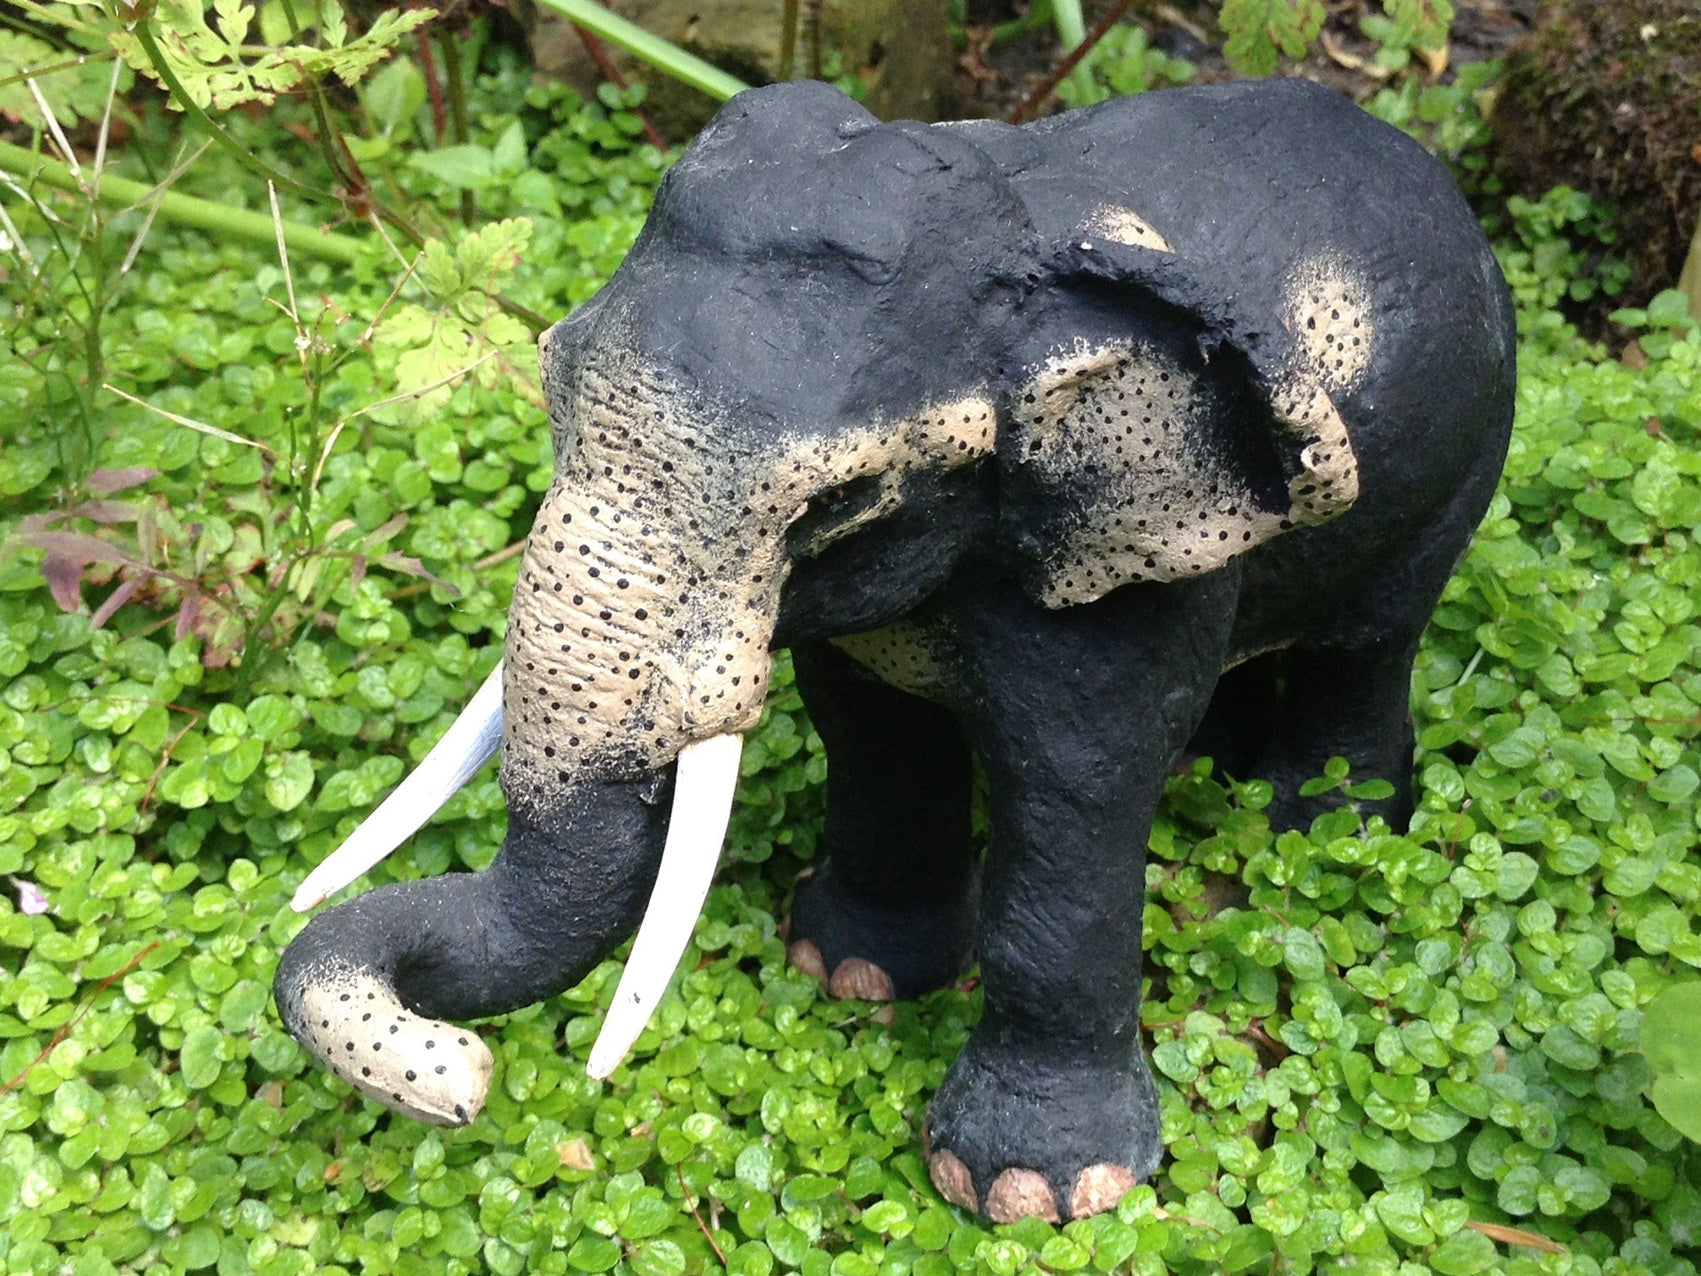 Elephant figurine made from elephant dung paper pulp